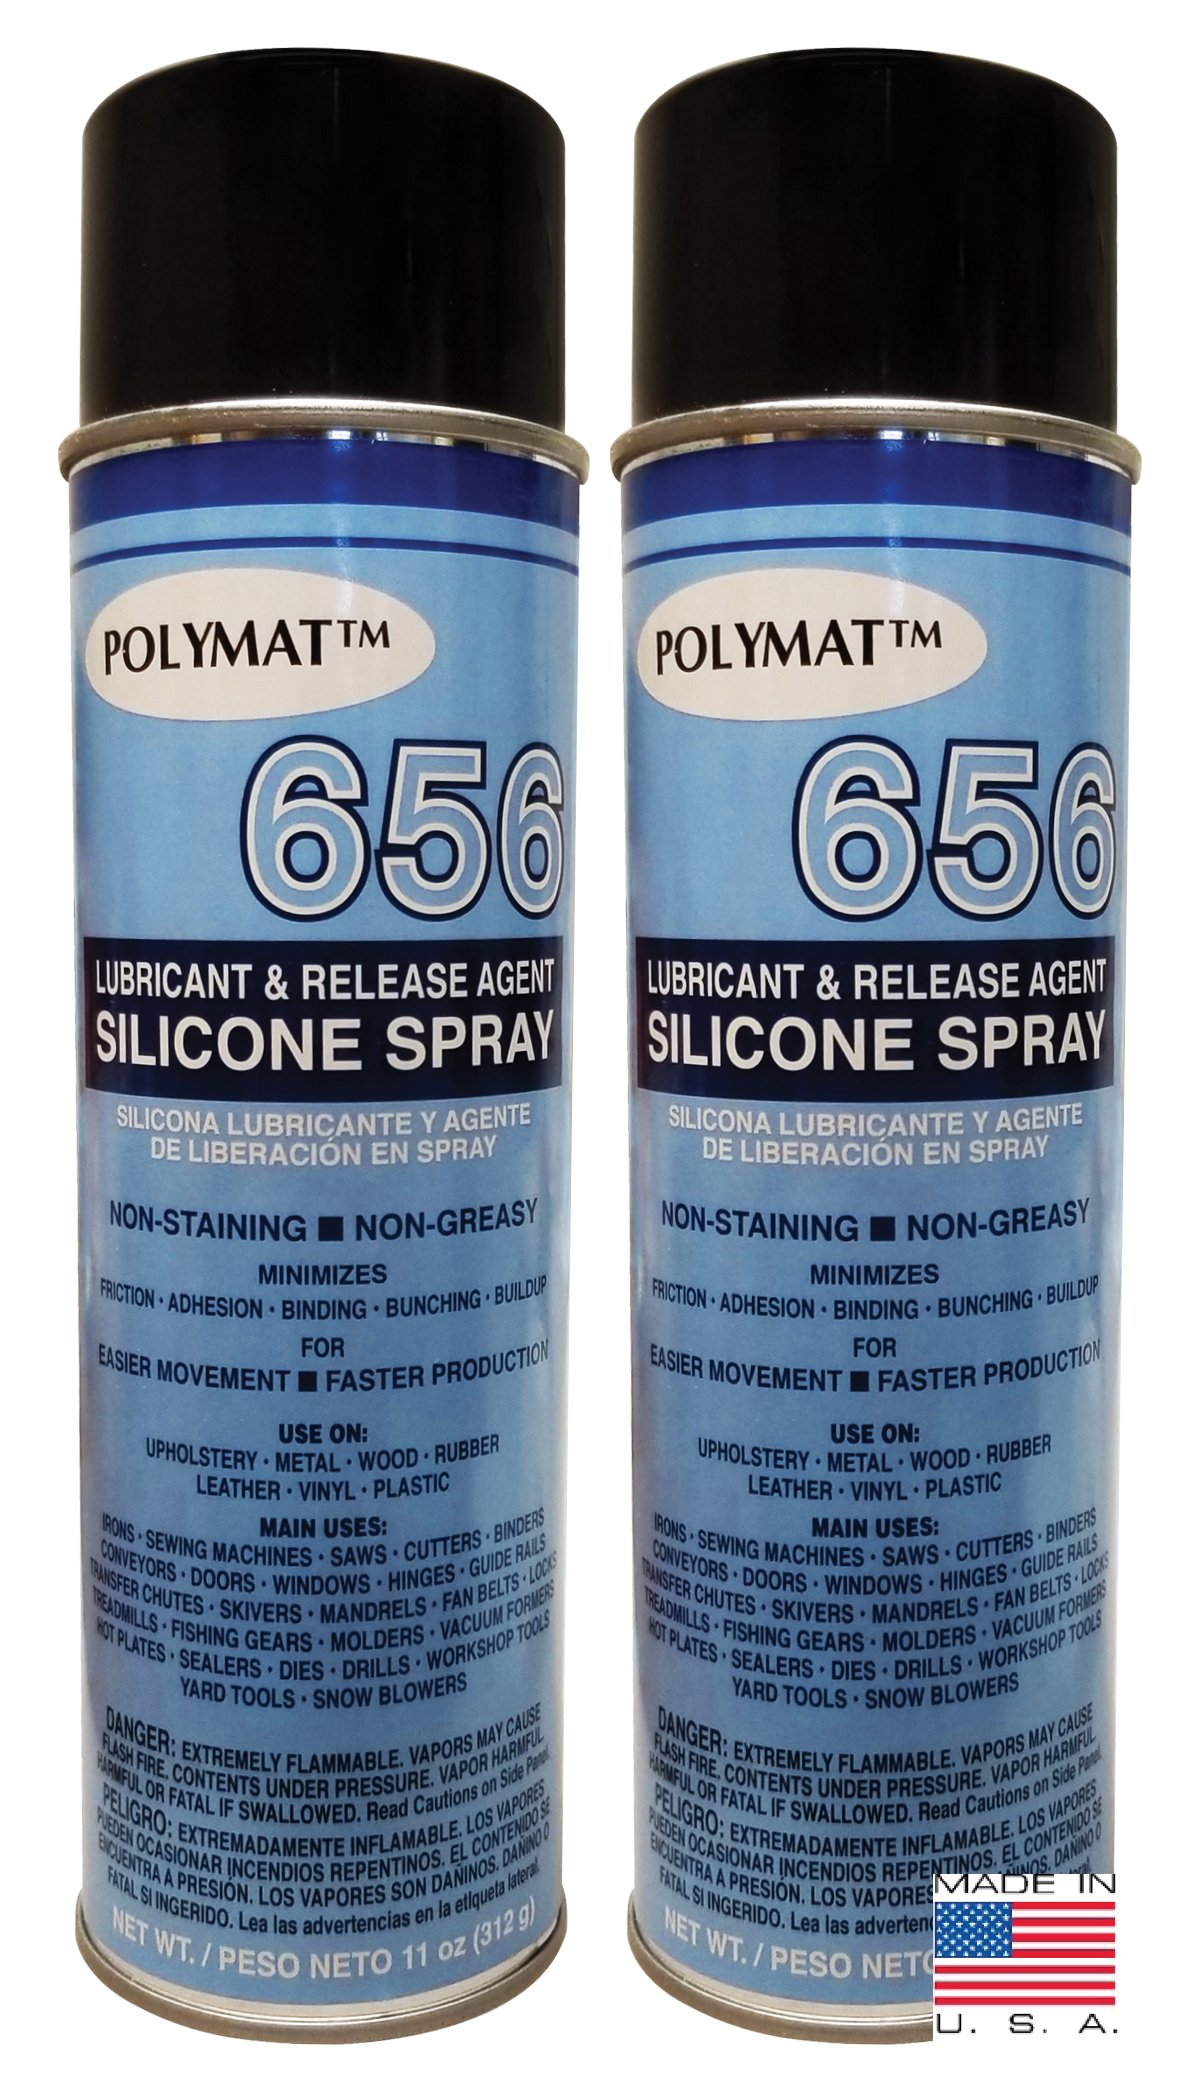 QTY 2 Polymat 656 SILICONE SPRAY NON GREASY LUBRICANT FOR LOCKS HINGES SOCKETS